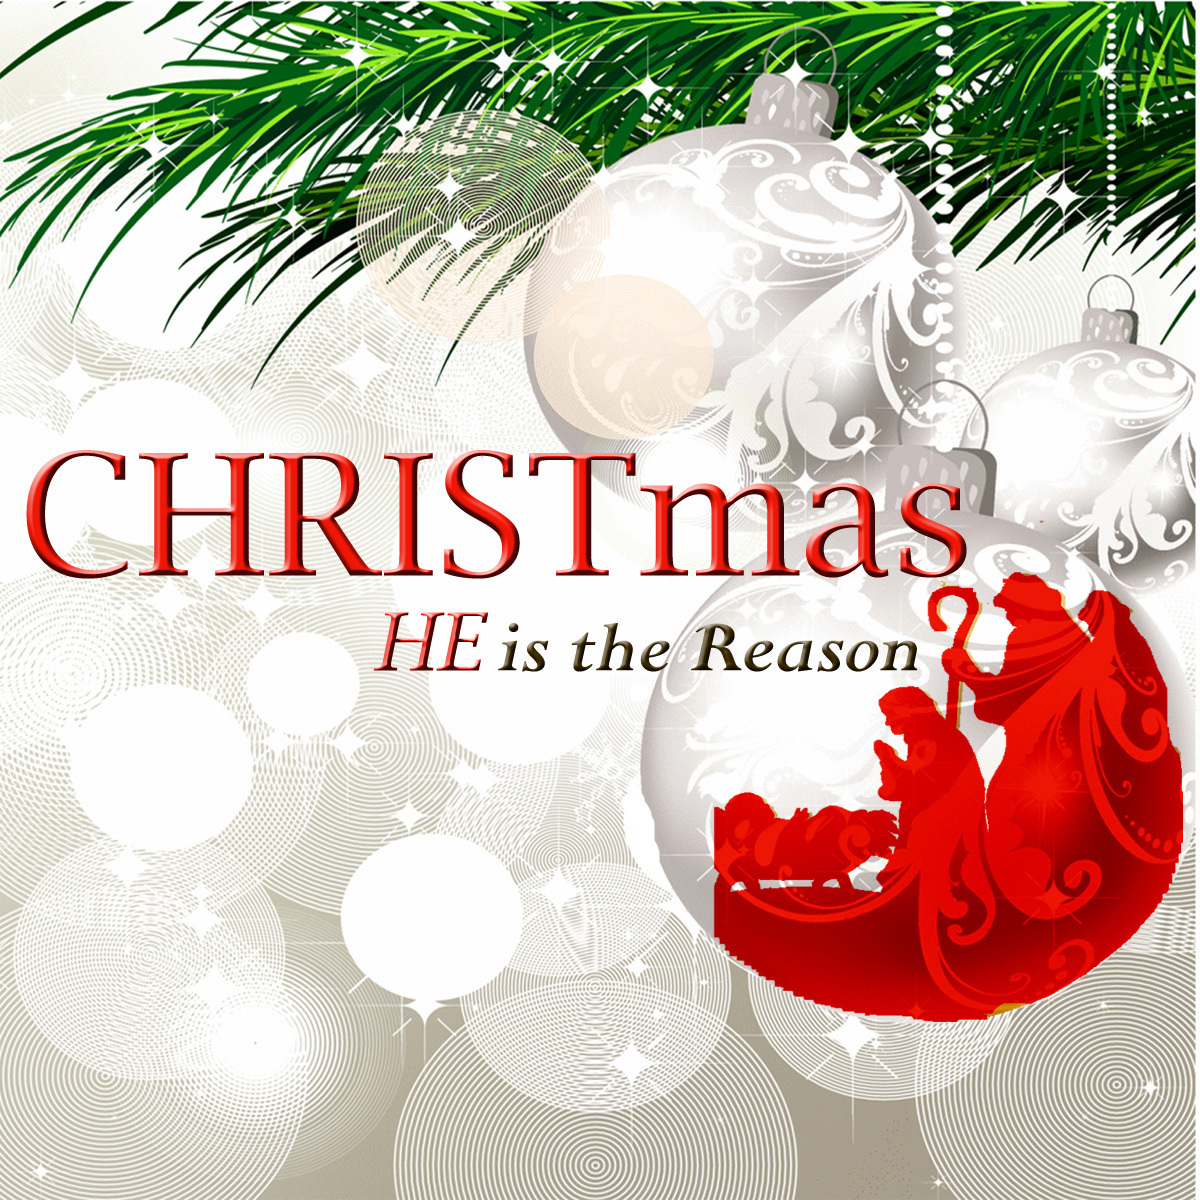 CHRISTmas - HE is the Reason by Various Artist - HBCD96